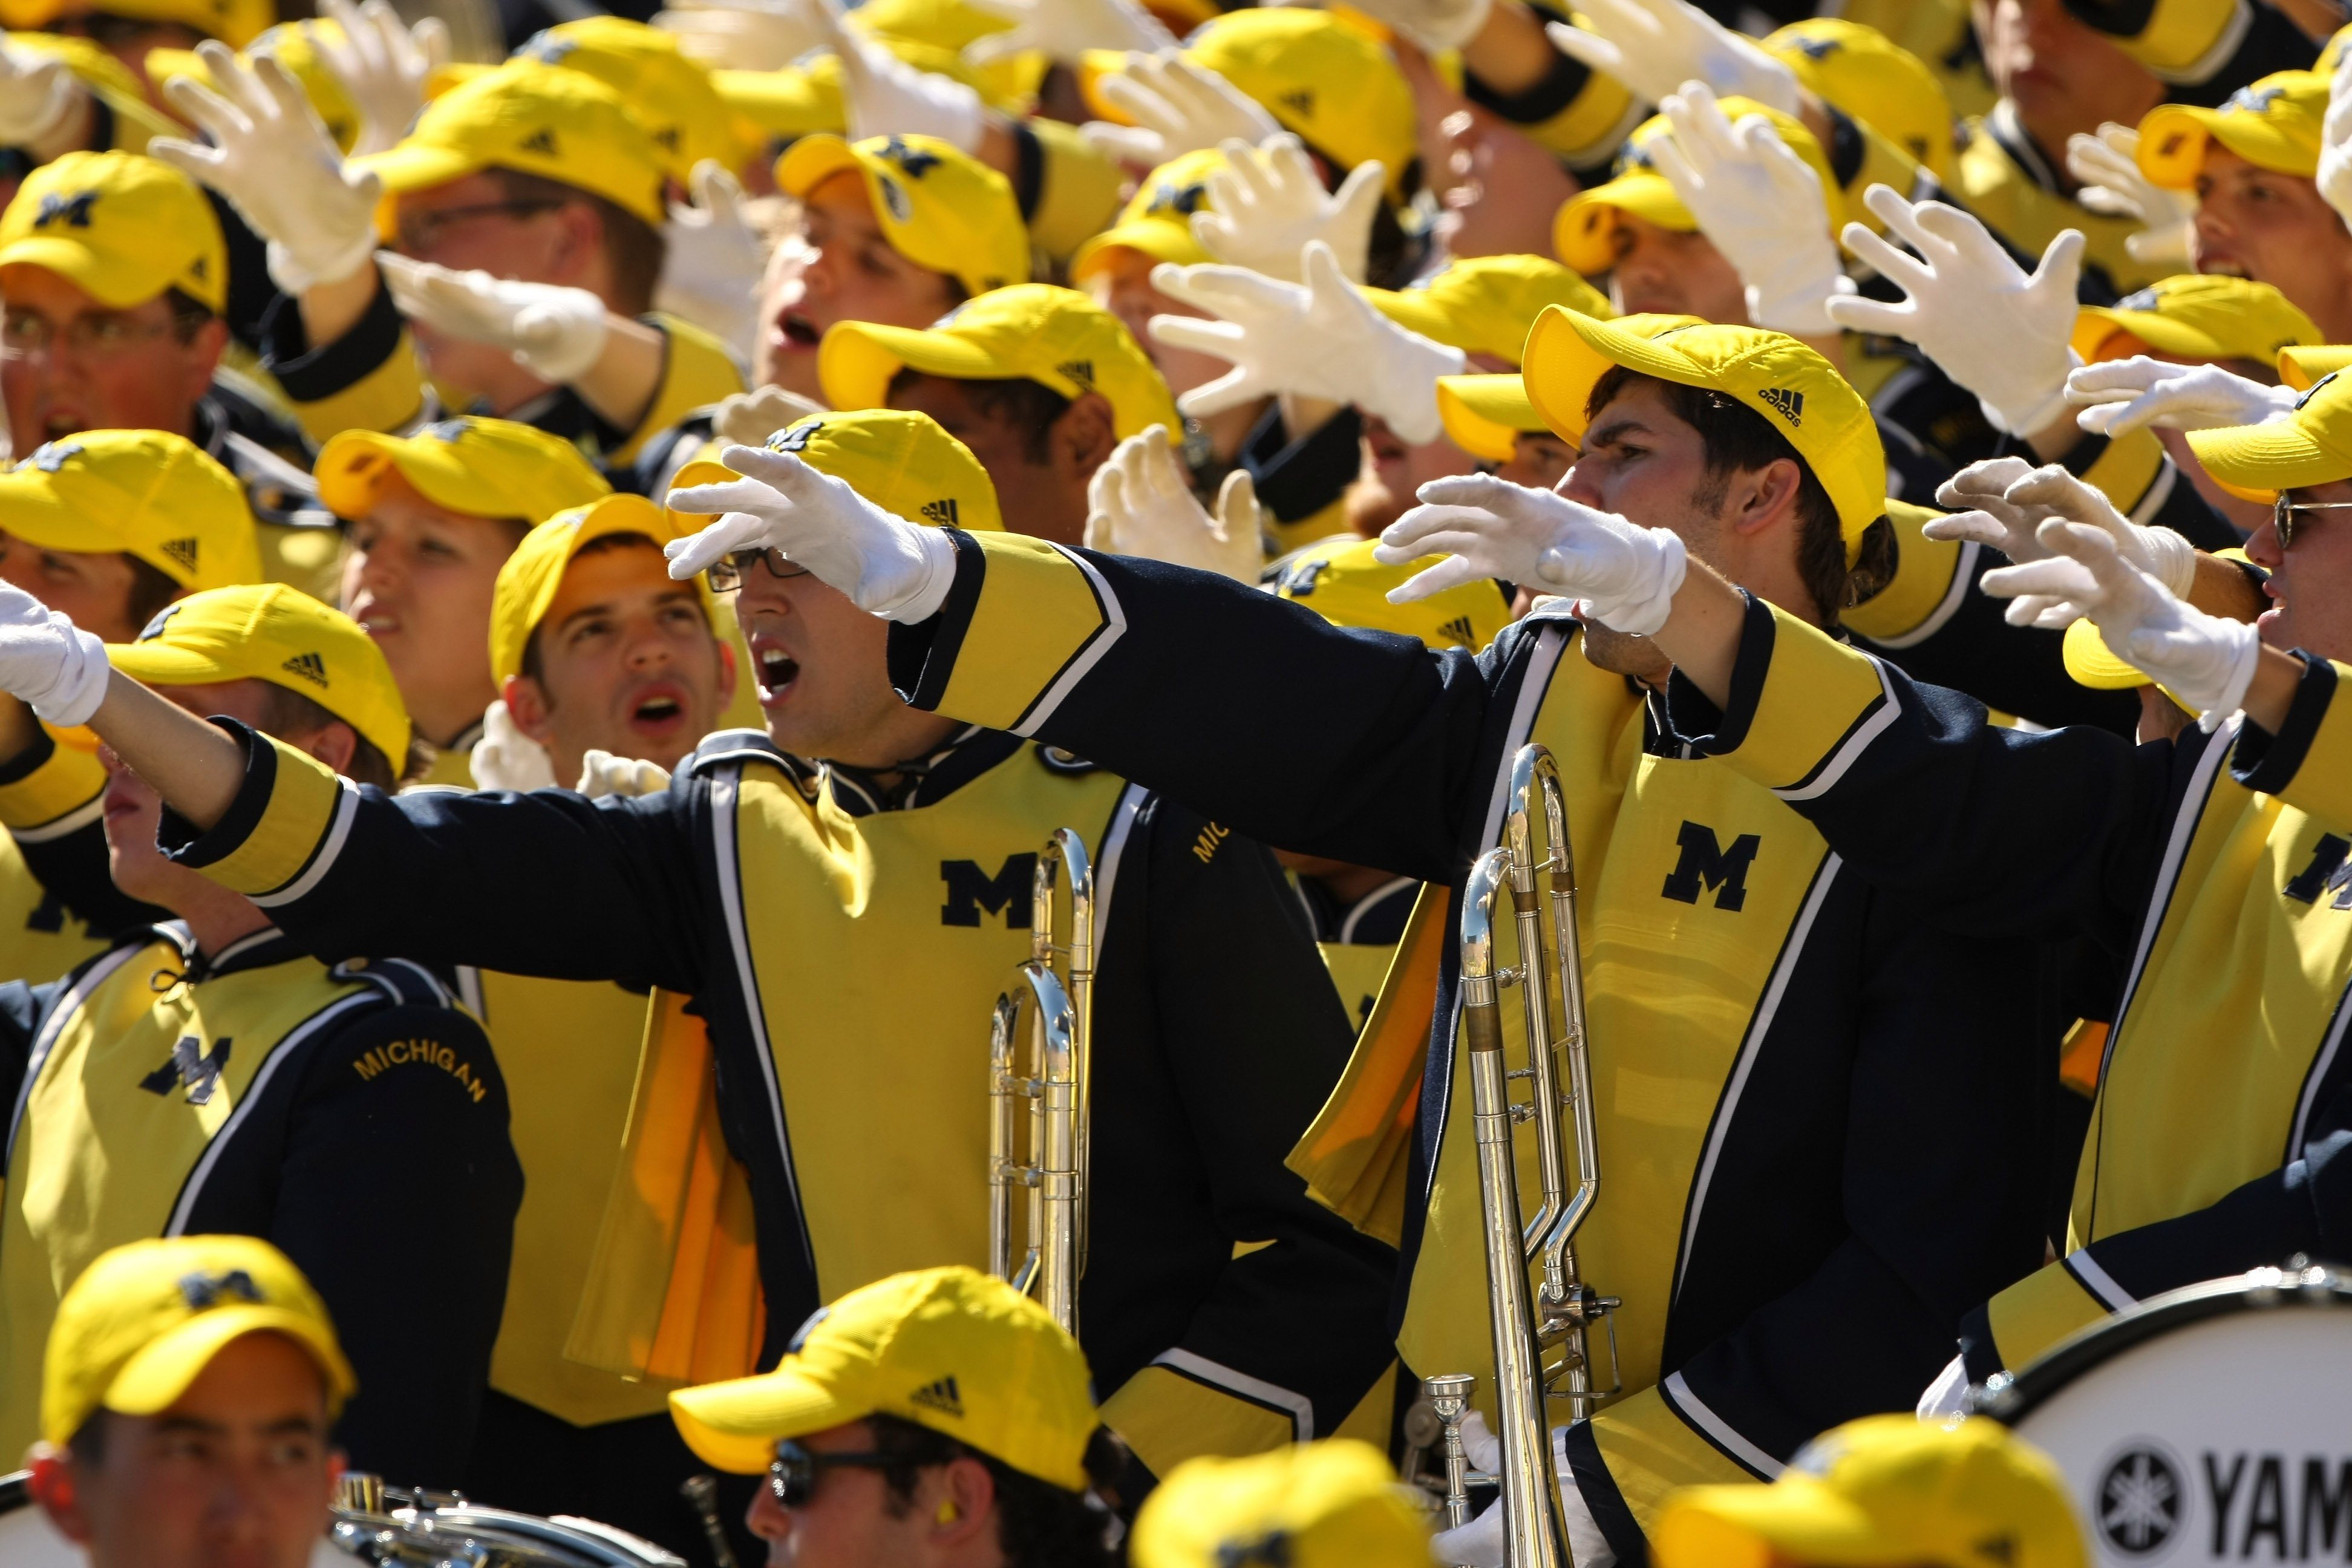 ANN ARBOR, MI - SEPTEMBER 19:  Members of the Michigan Wolverines band cheer in the game against the Eastern Michigan Eagles at Michigan Stadium on September 19, 2009 in Ann Arbor, Michigan. Michigan won 45-17.  (Photo by Stephen Dunn/Getty Images)